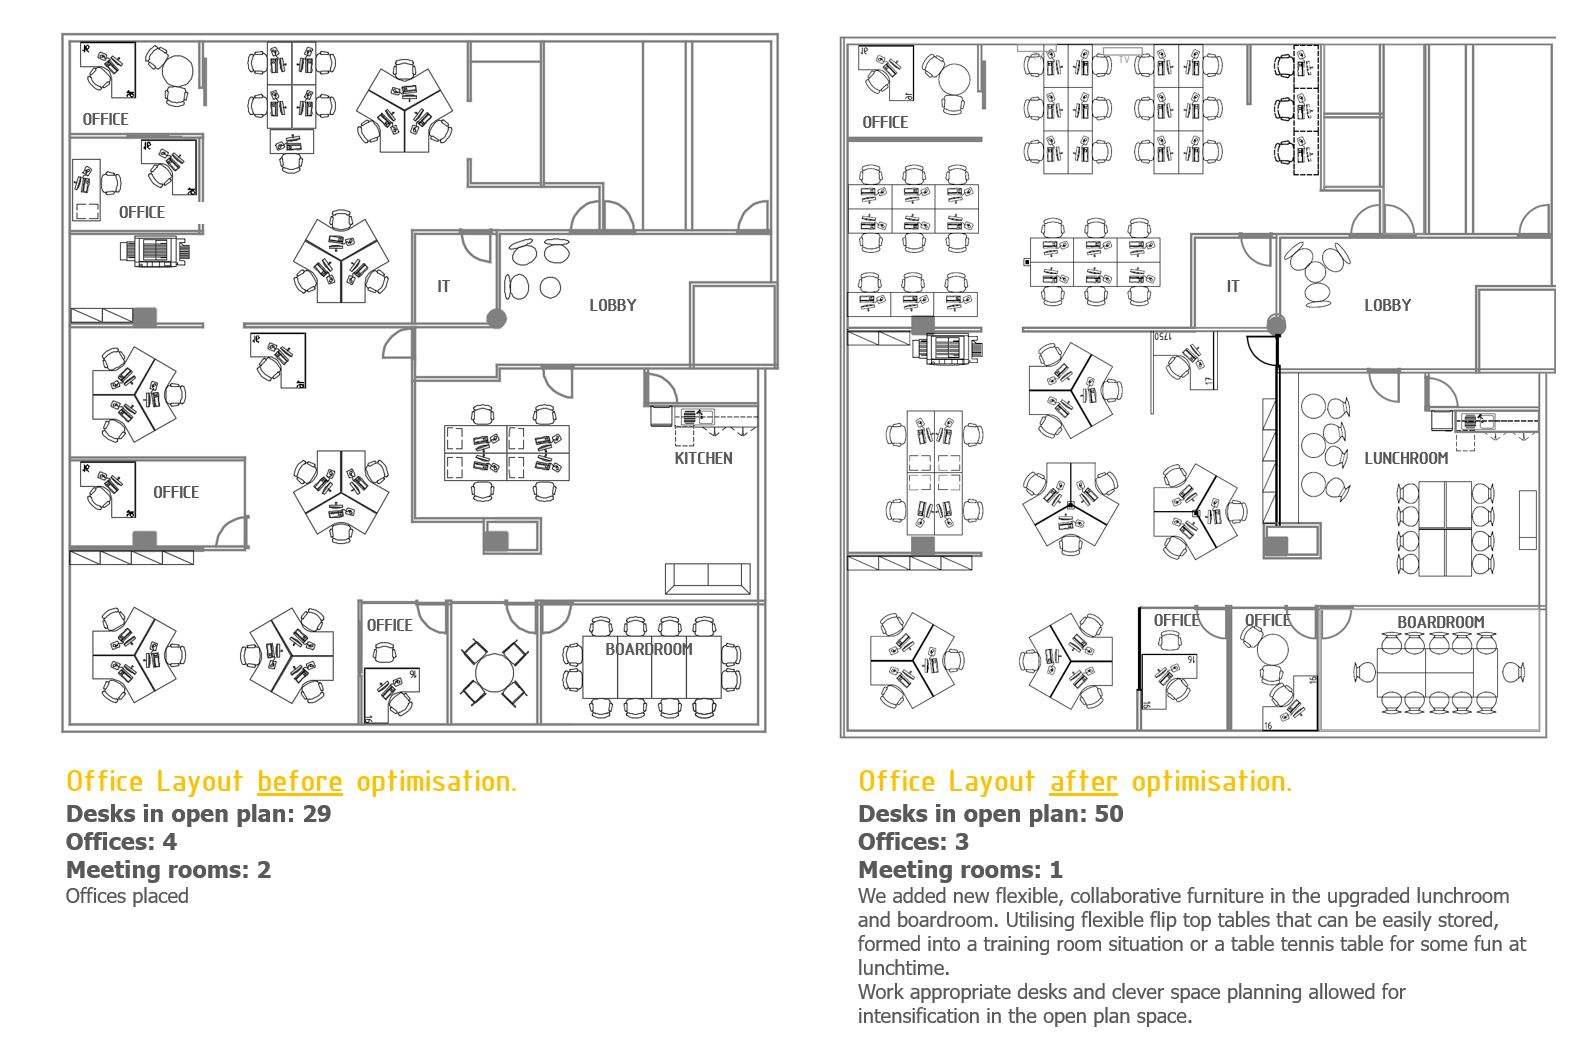 Layout - before and after